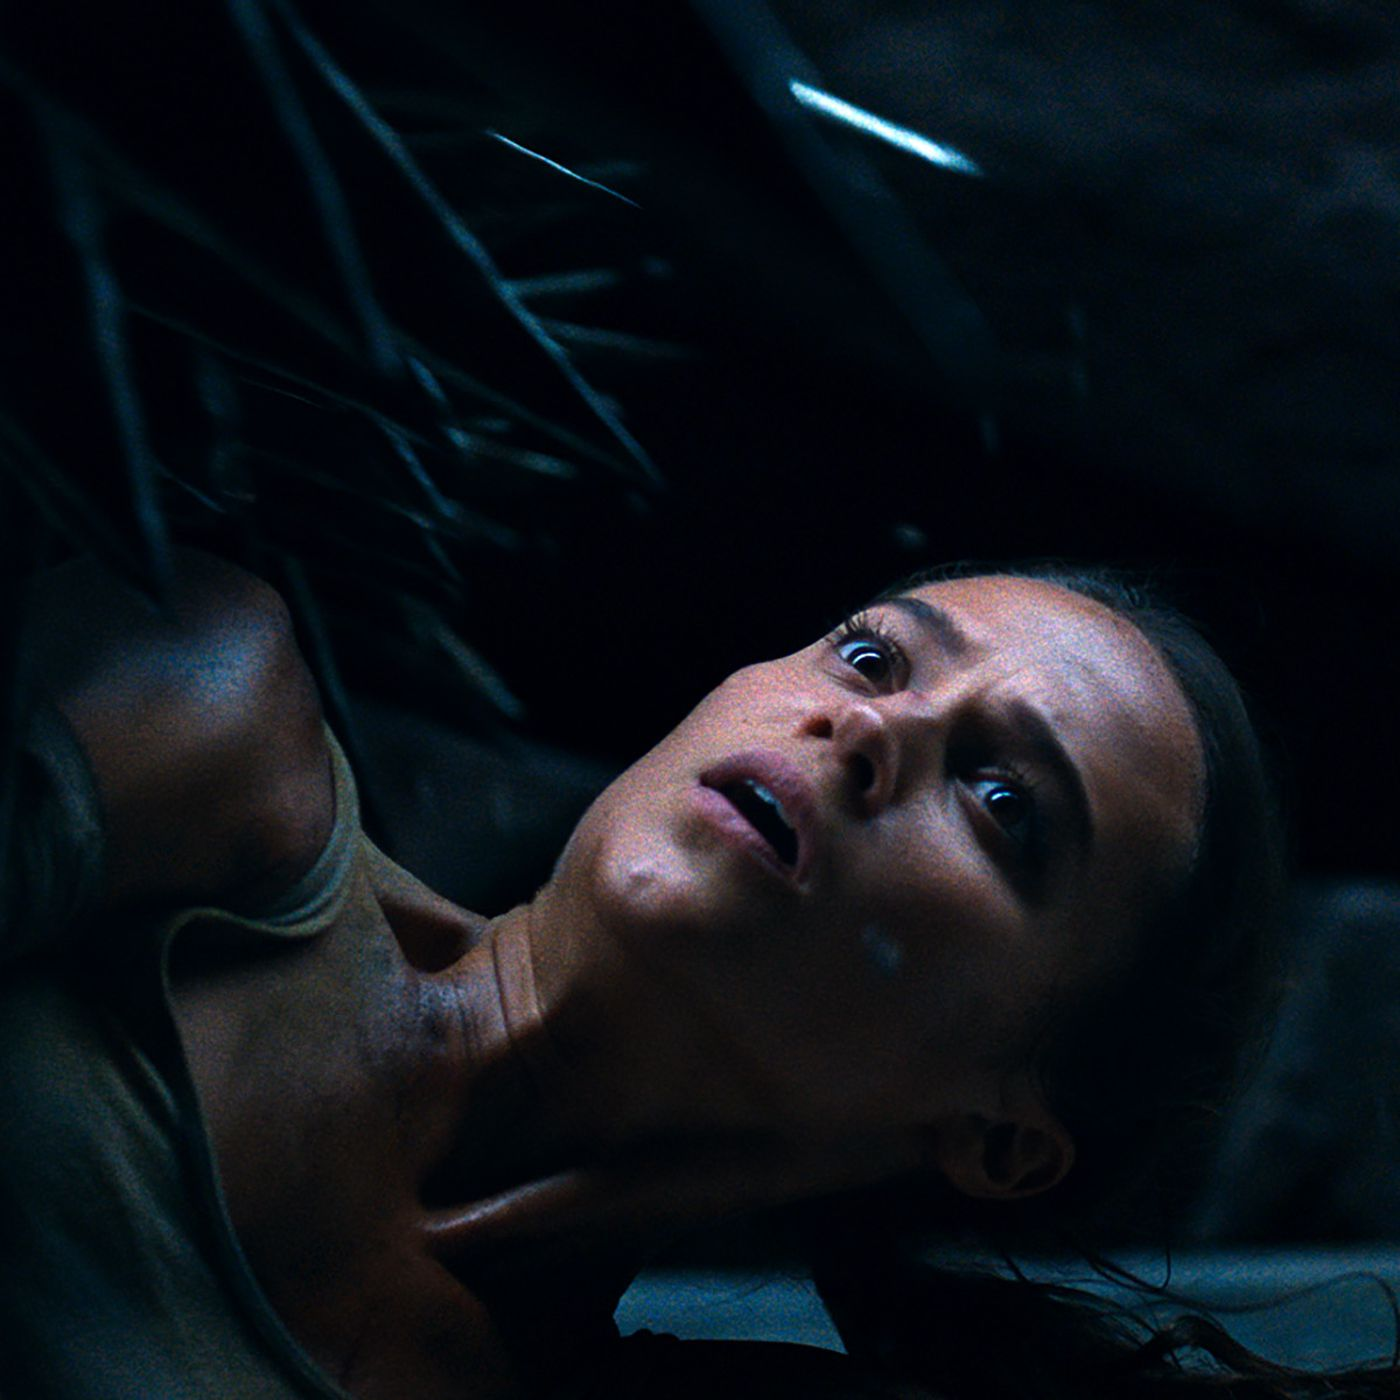 The 2018 Tomb Raider Film Could Have Learned So Much More From The Games The Verge